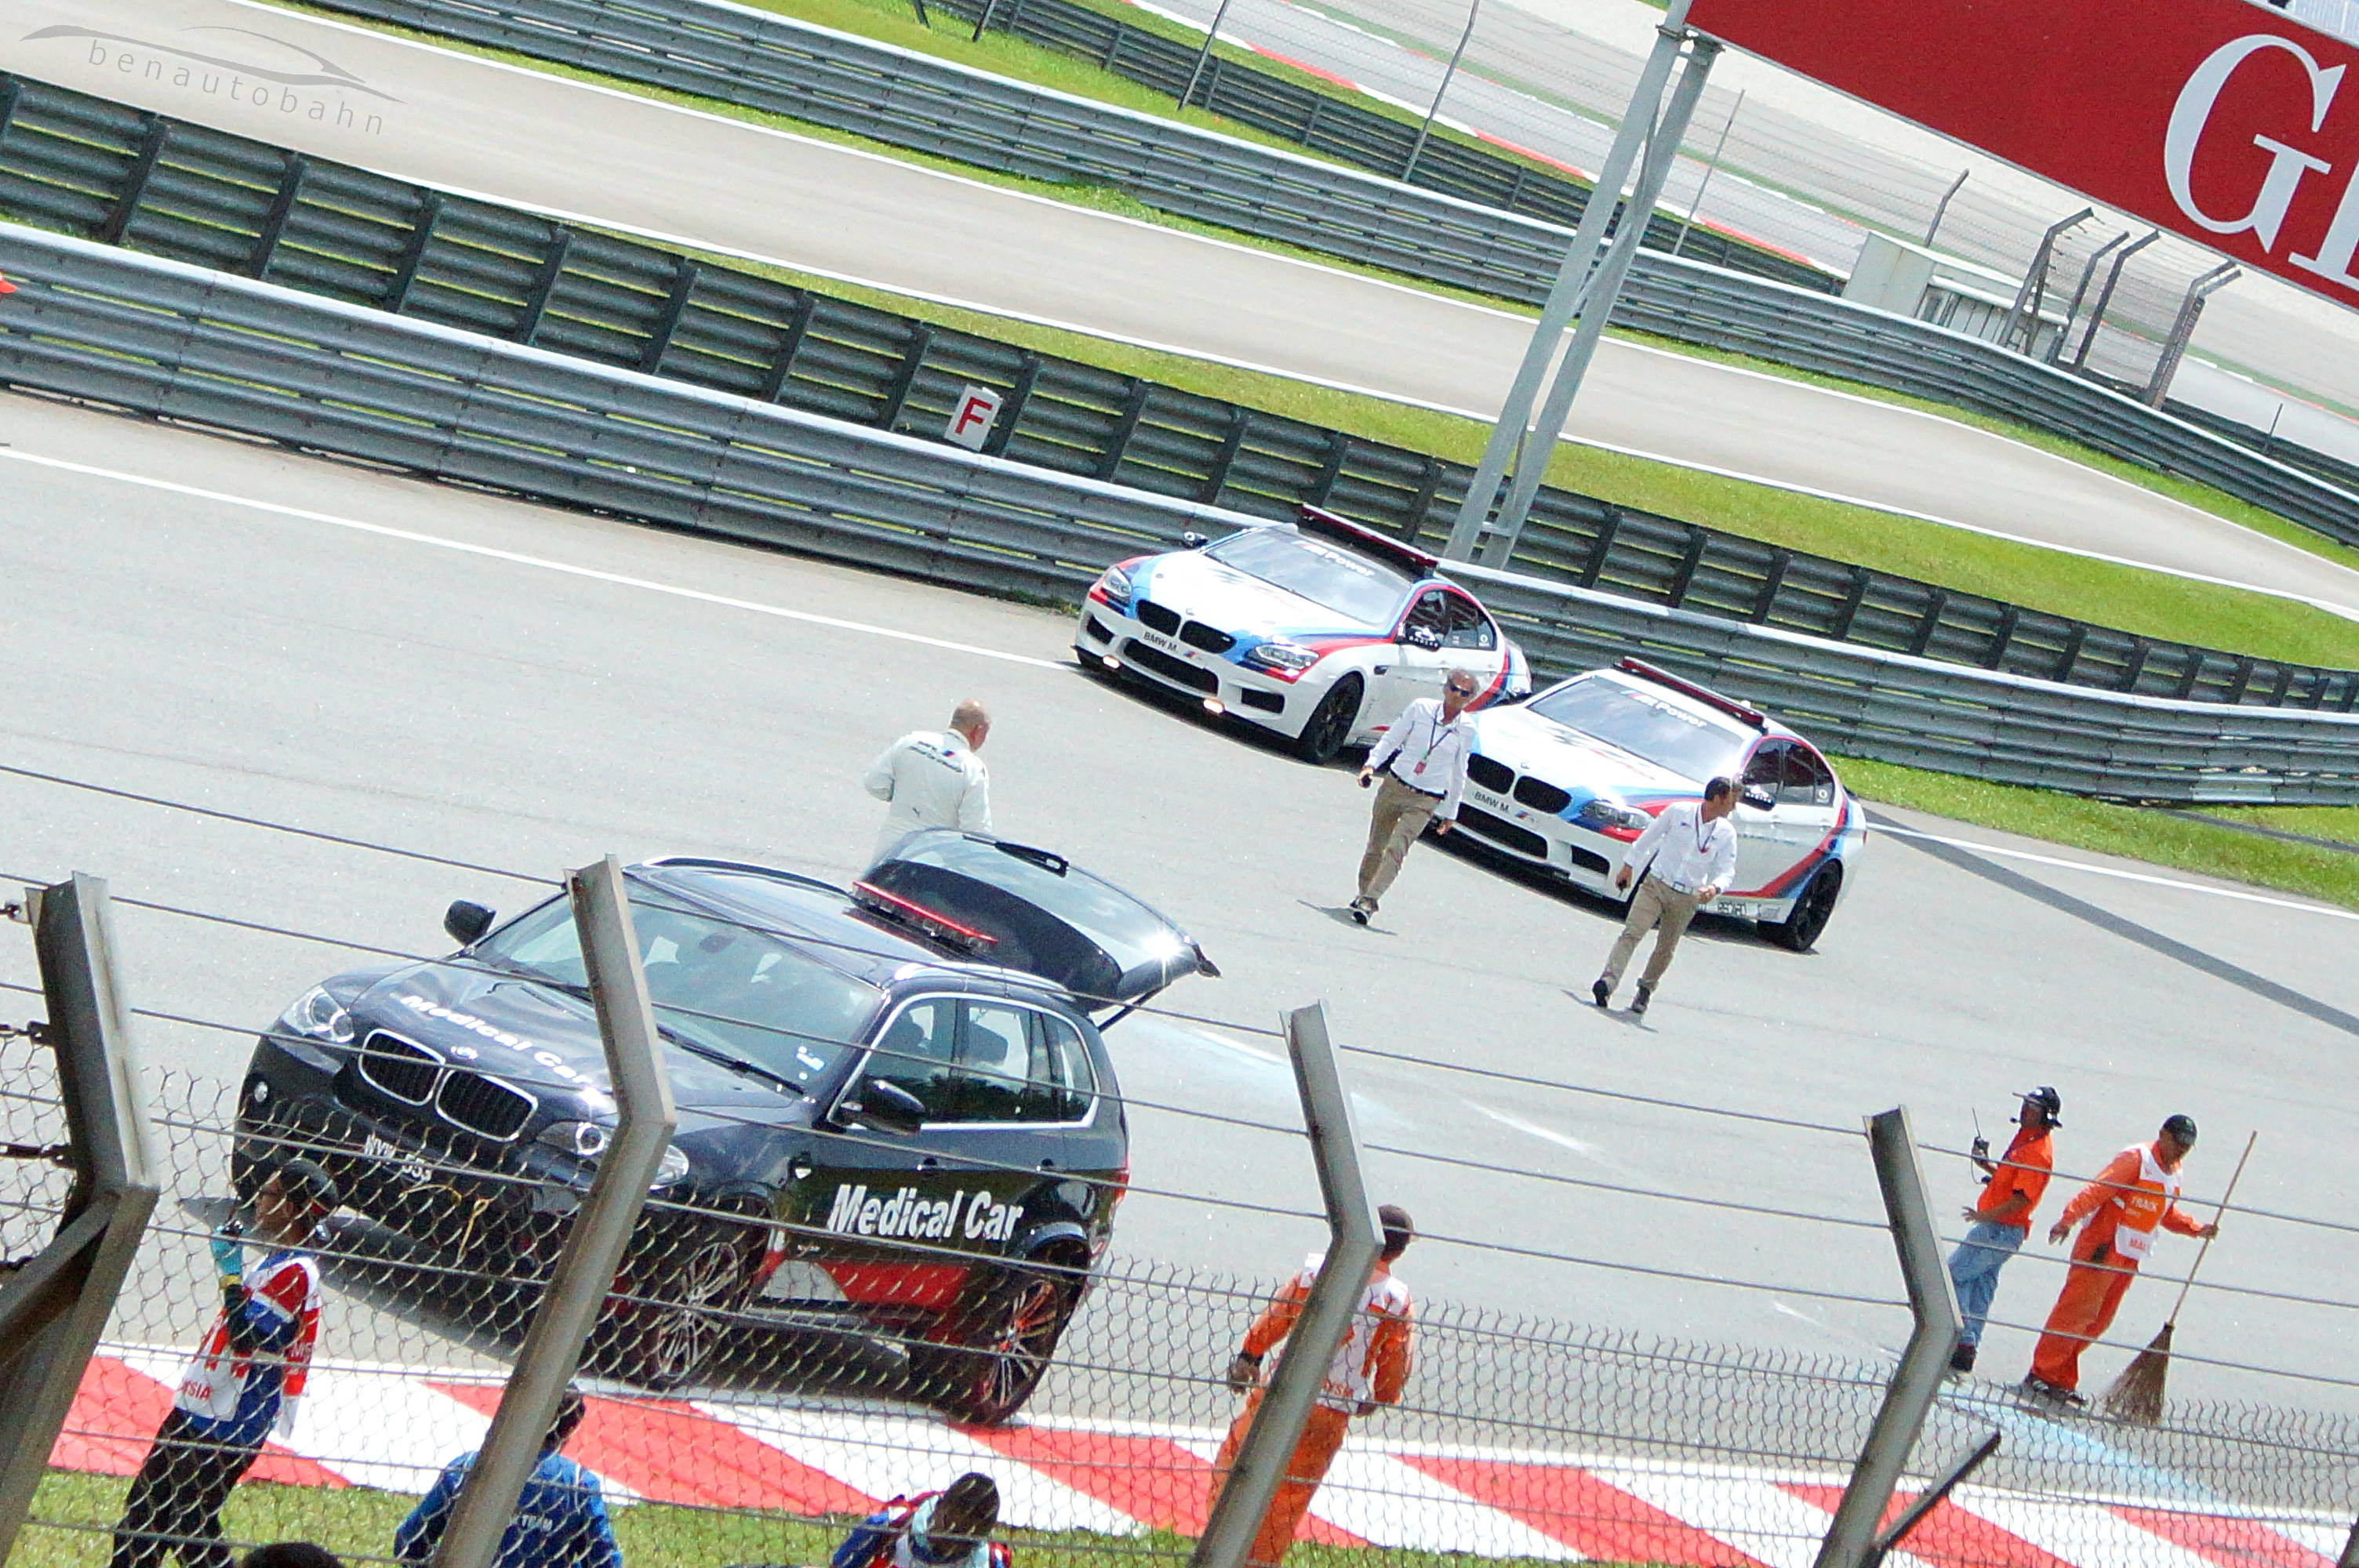 Loris Capirossi (right) and his partner (left) from the M5 Safety Car walking towards the crash site